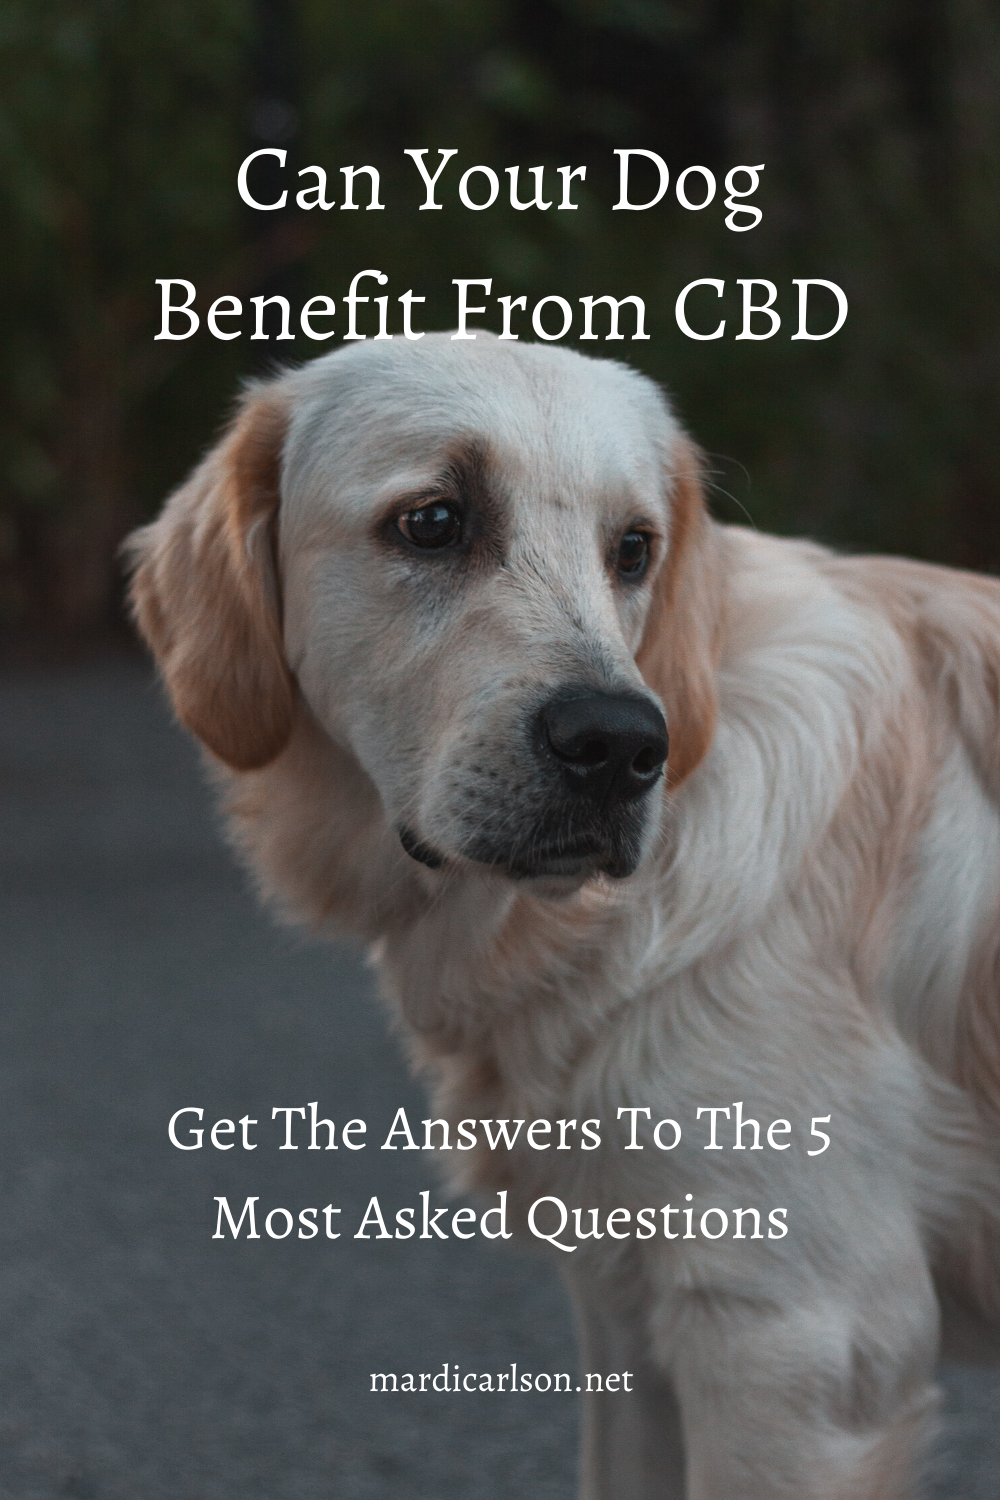 Pin on CBD oil for pets